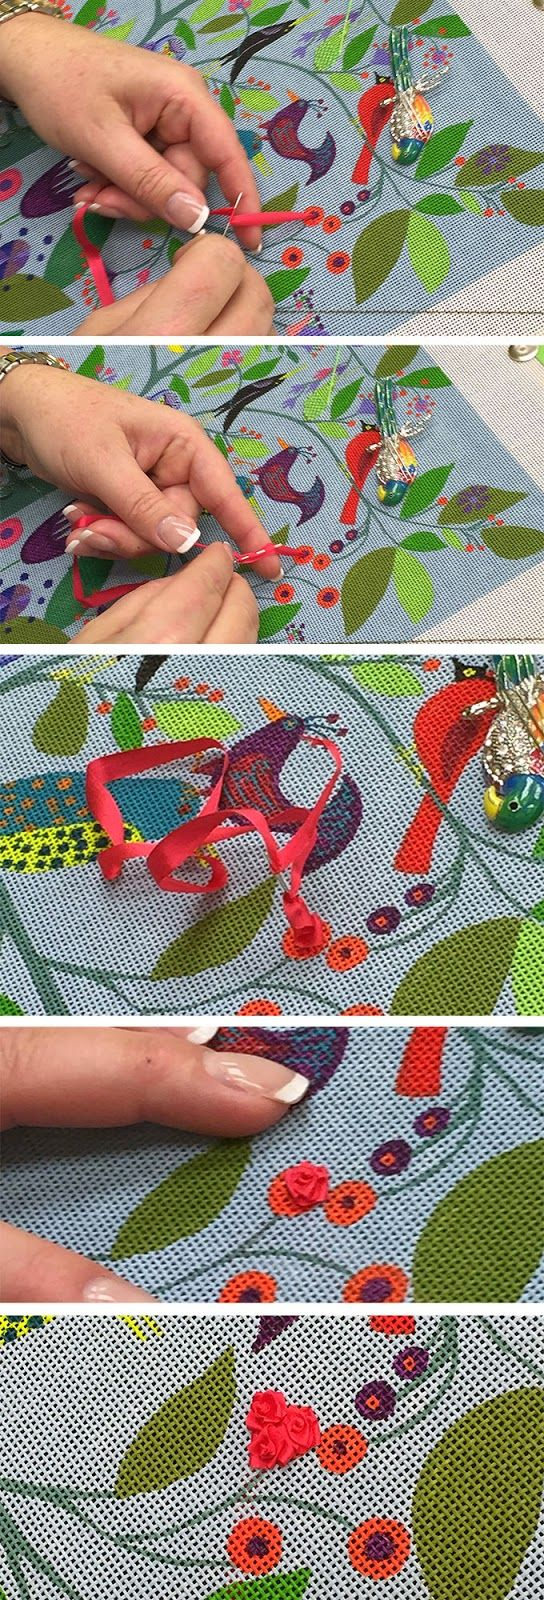 It's not your Grandmother's Needlepoint: Many Birds, Many Trees, Many Leaves, Much Fun!